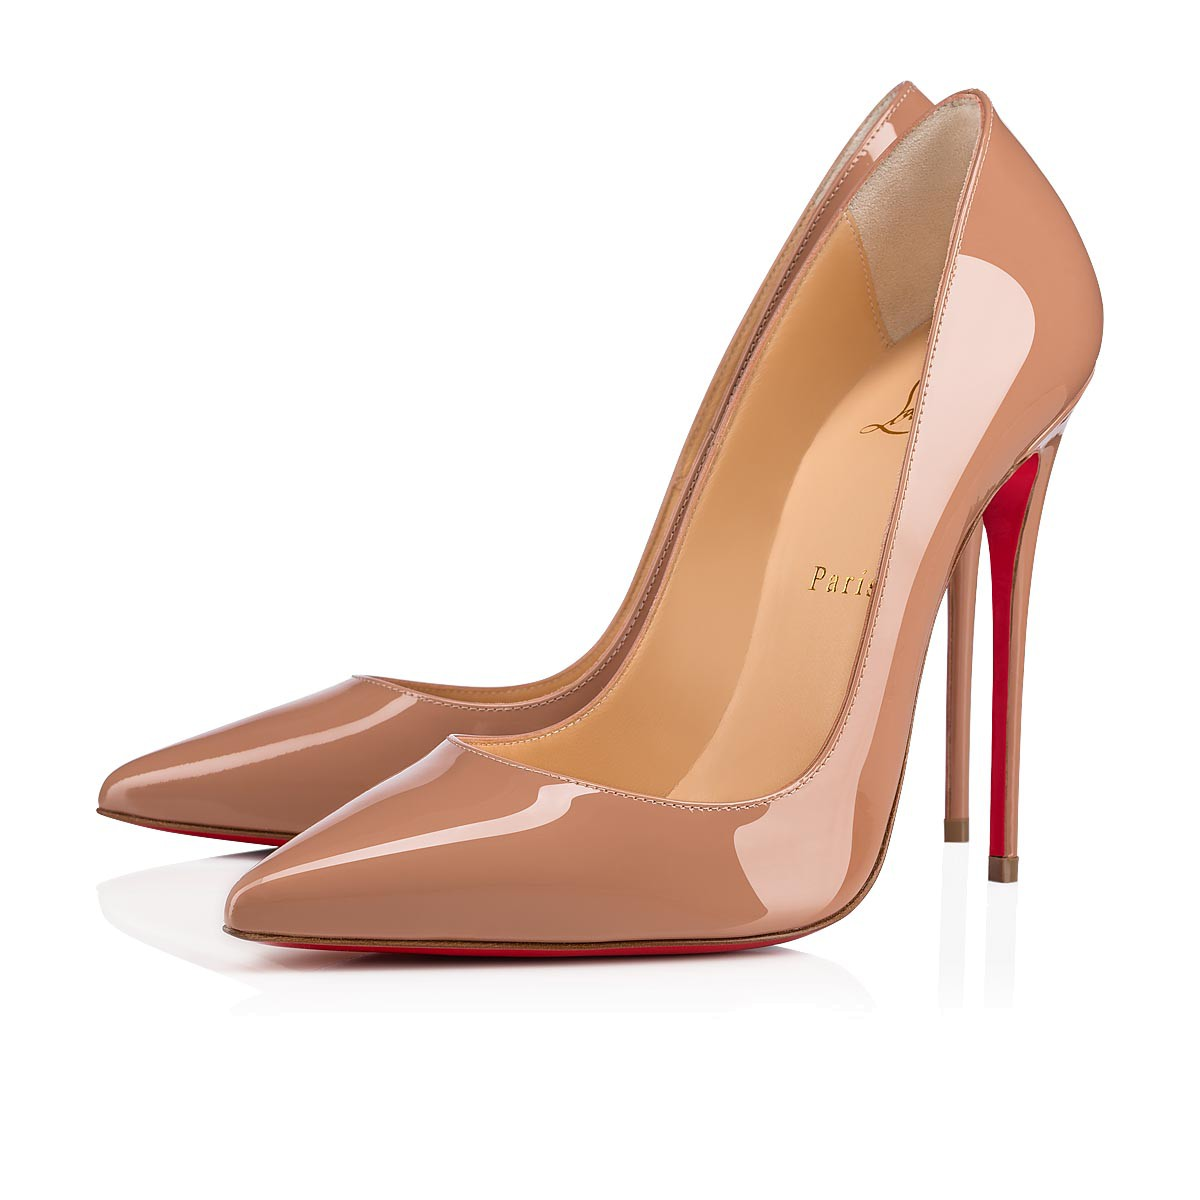 so kate 120 nude patent leather women shoes christian louboutin rh us christianlouboutin com louboutin shoes price range louboutin shoes price most expensive